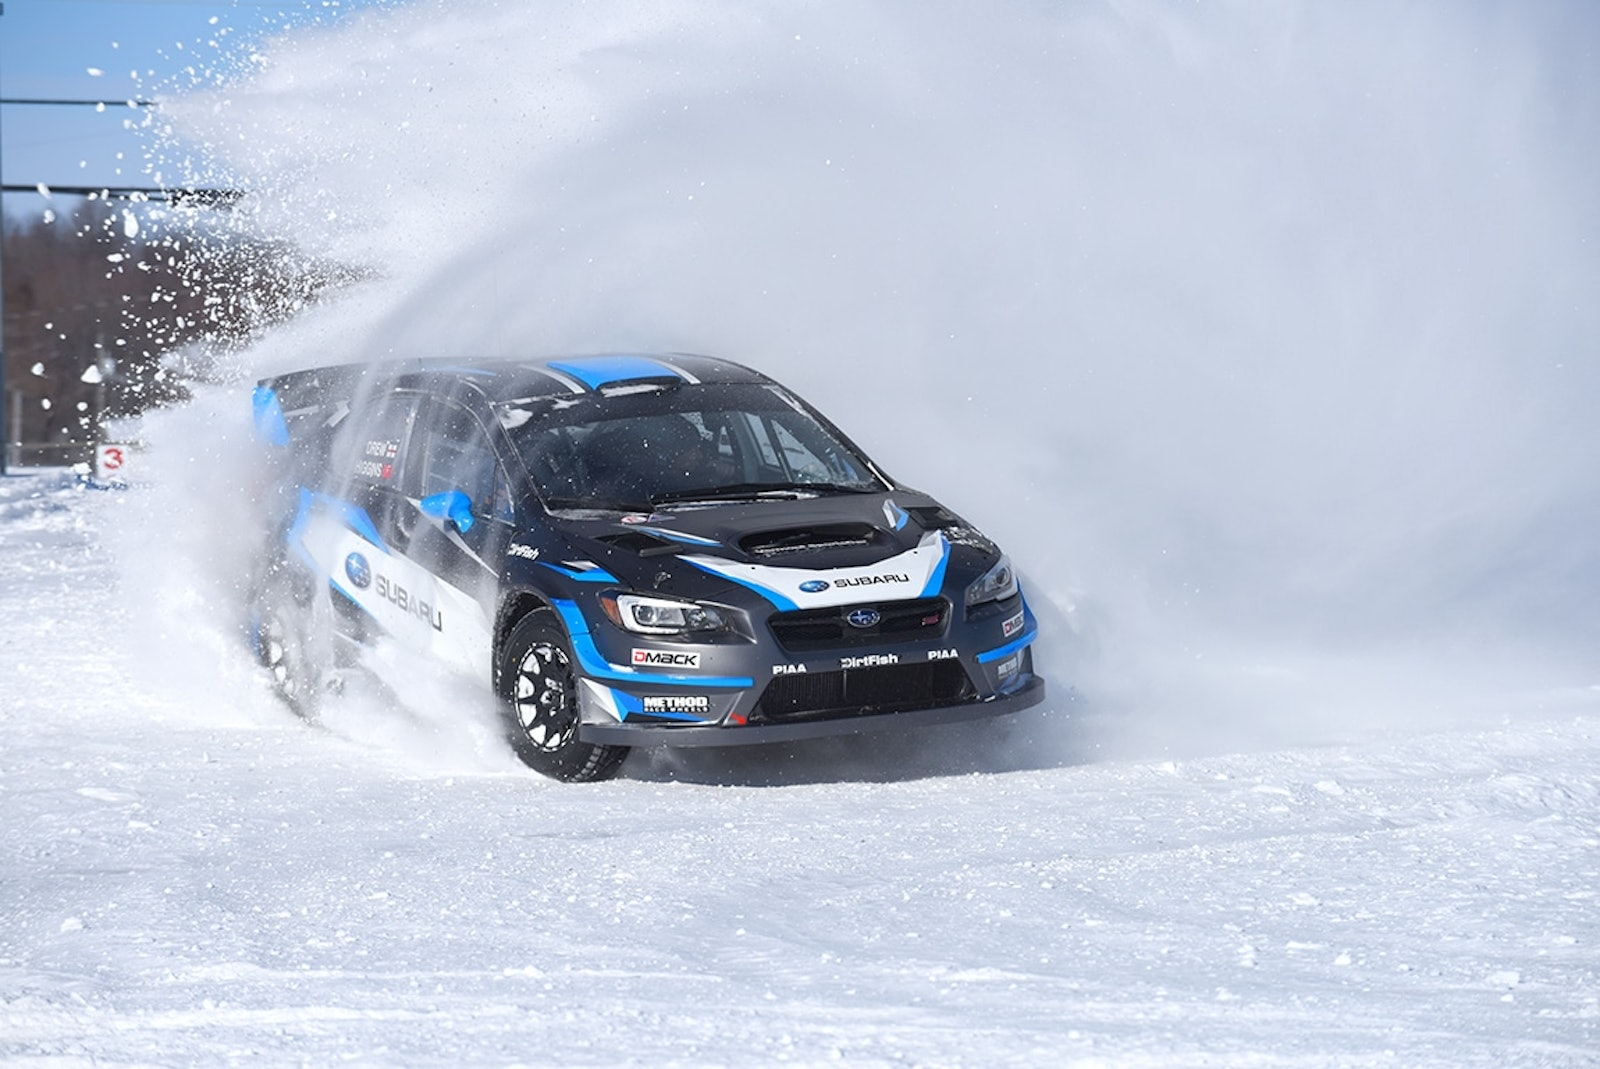 David_Higgins_and_co_driver_Craig_Drew_prepare_for_the_season_opening_Rally_Perce_Neige_in_Canada